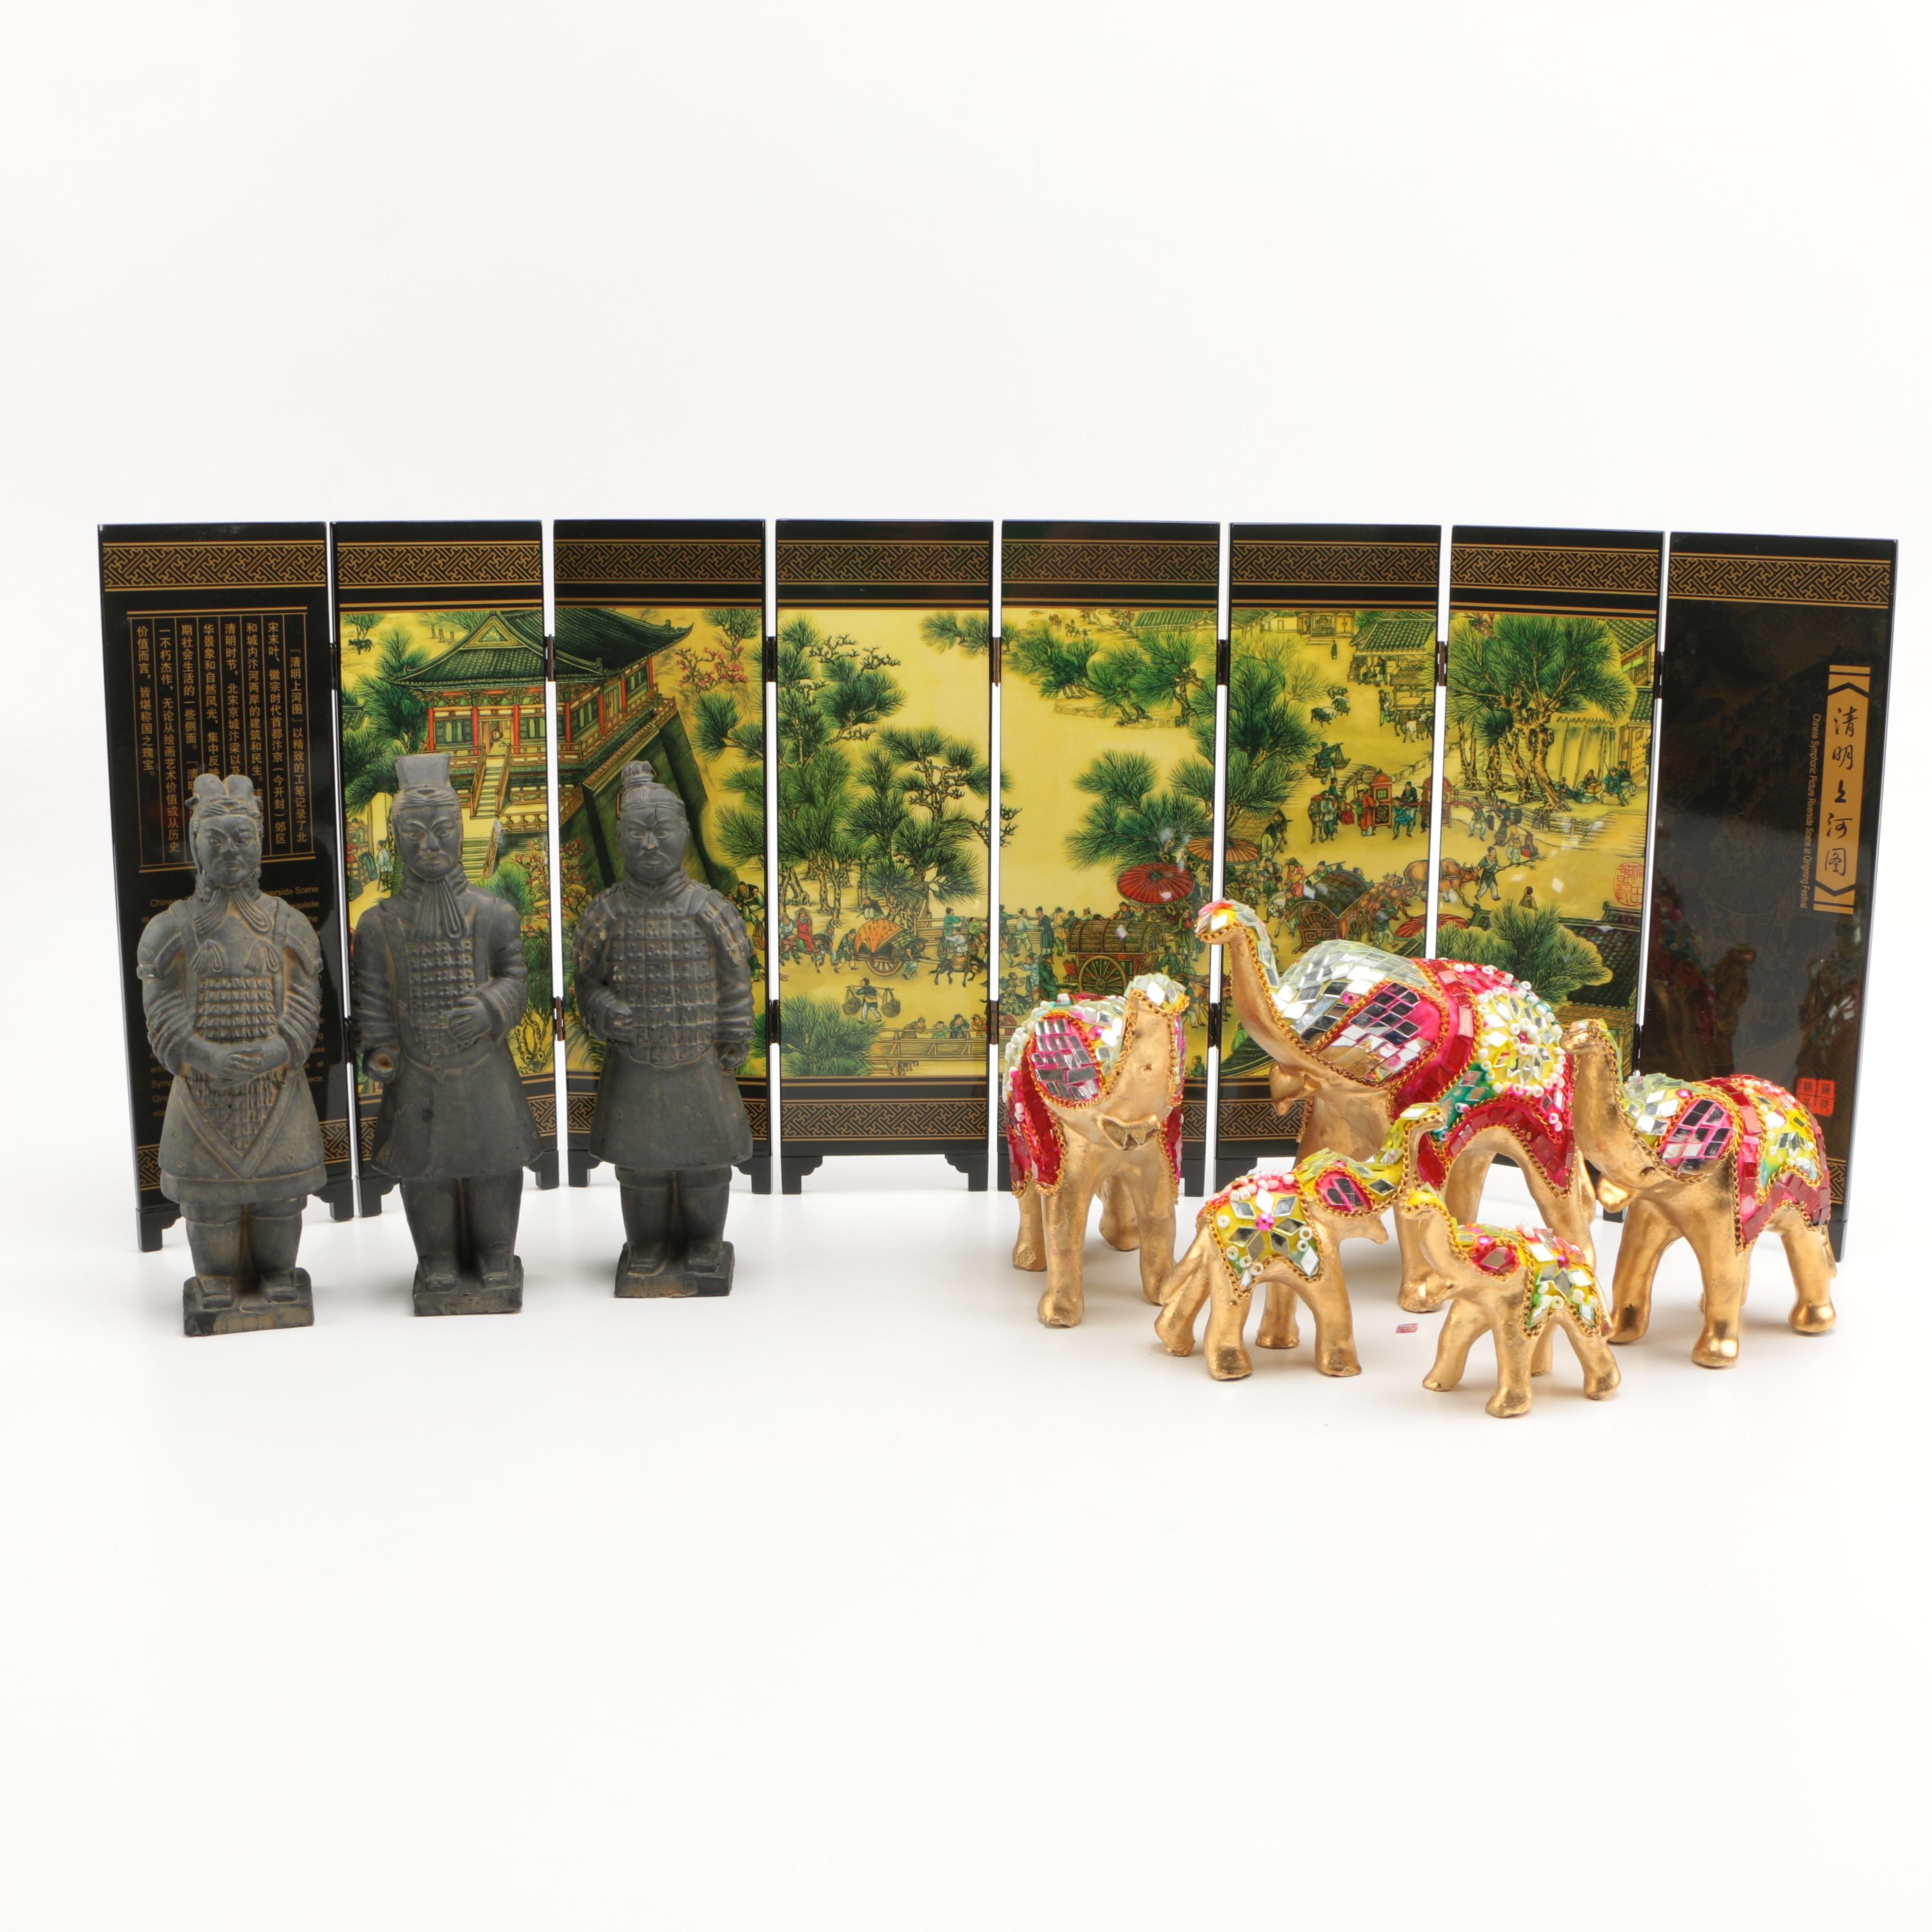 Assorted Chinese Decor and Figurines